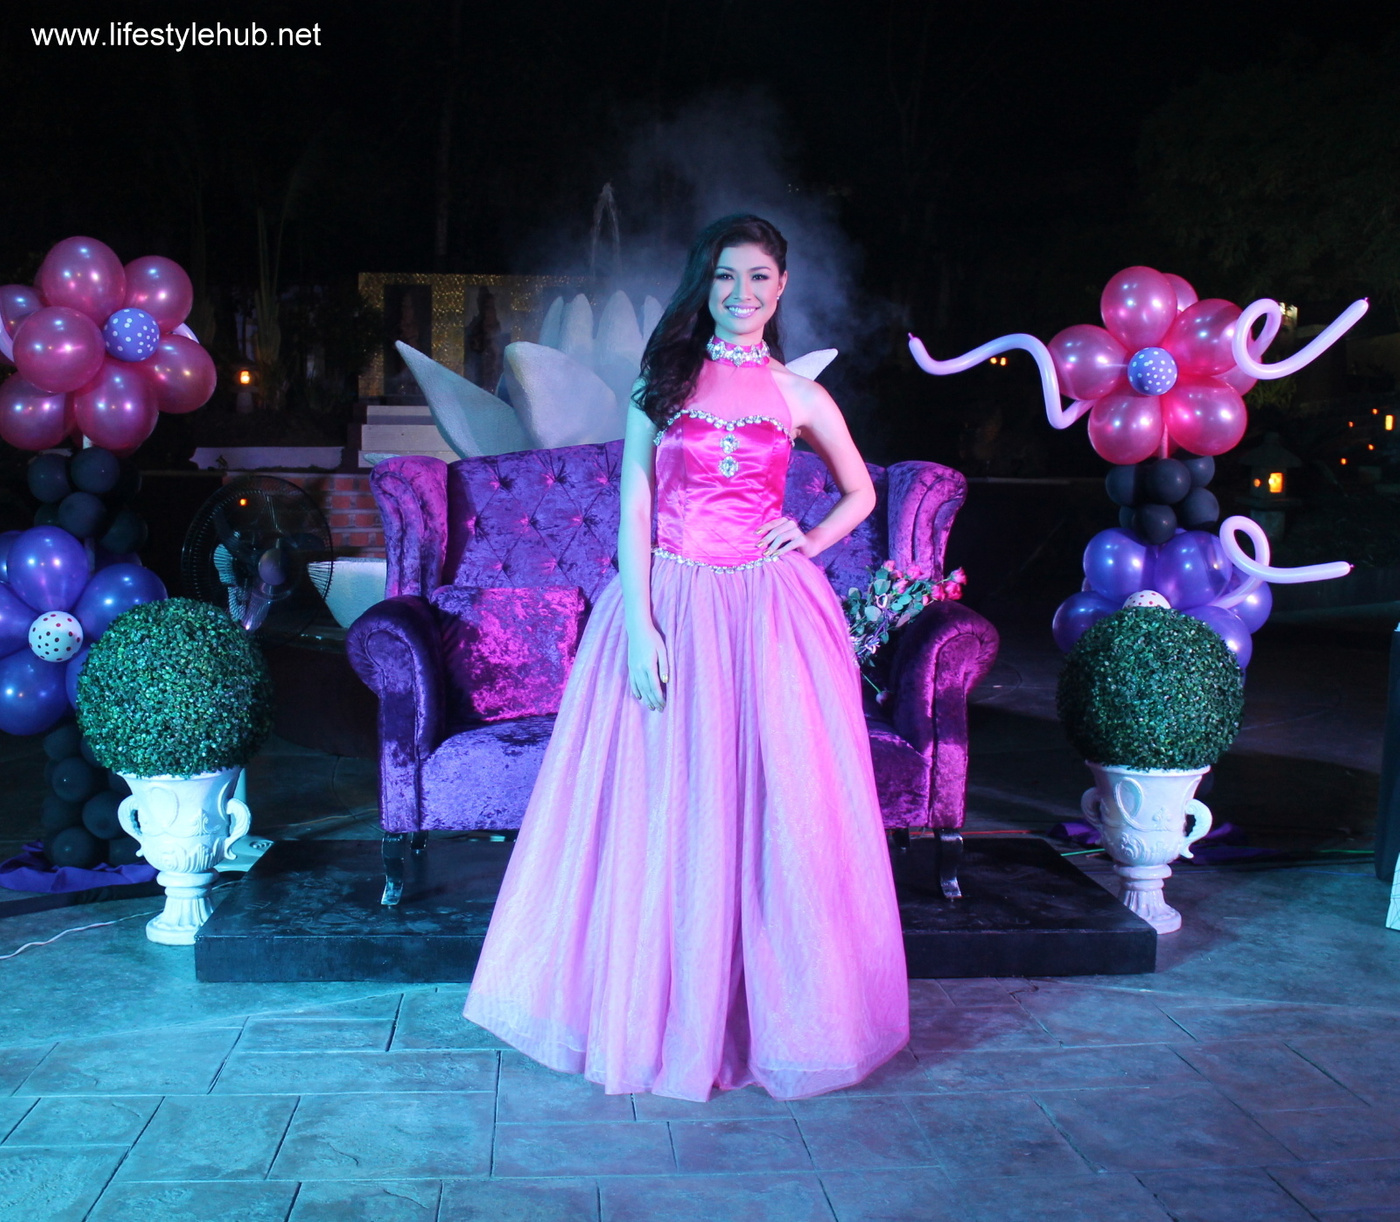 The Lifestyle Hub: Thea Tolentino's Debut